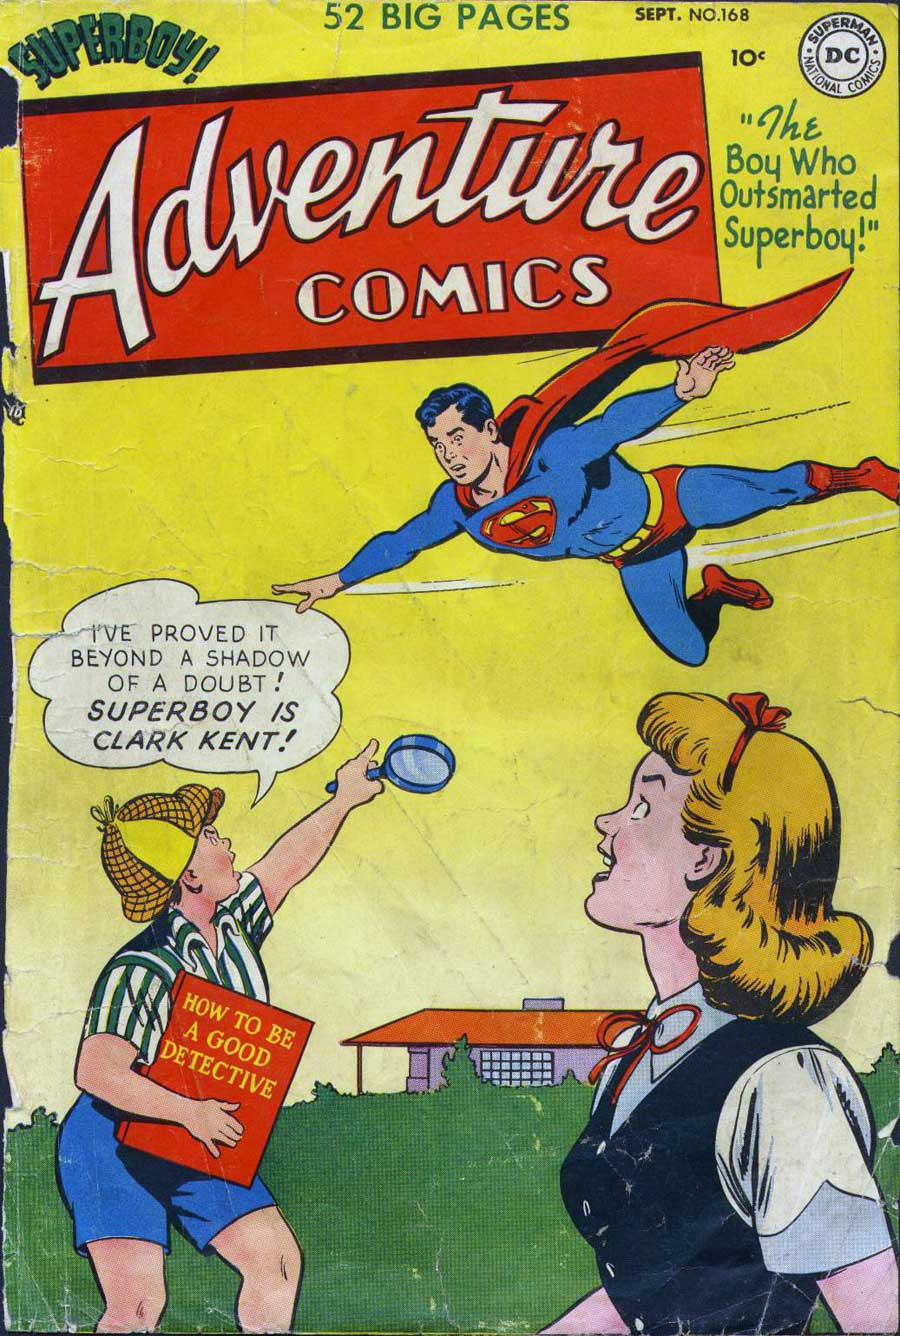 Adventure Comics #168 Sept 1951 cover